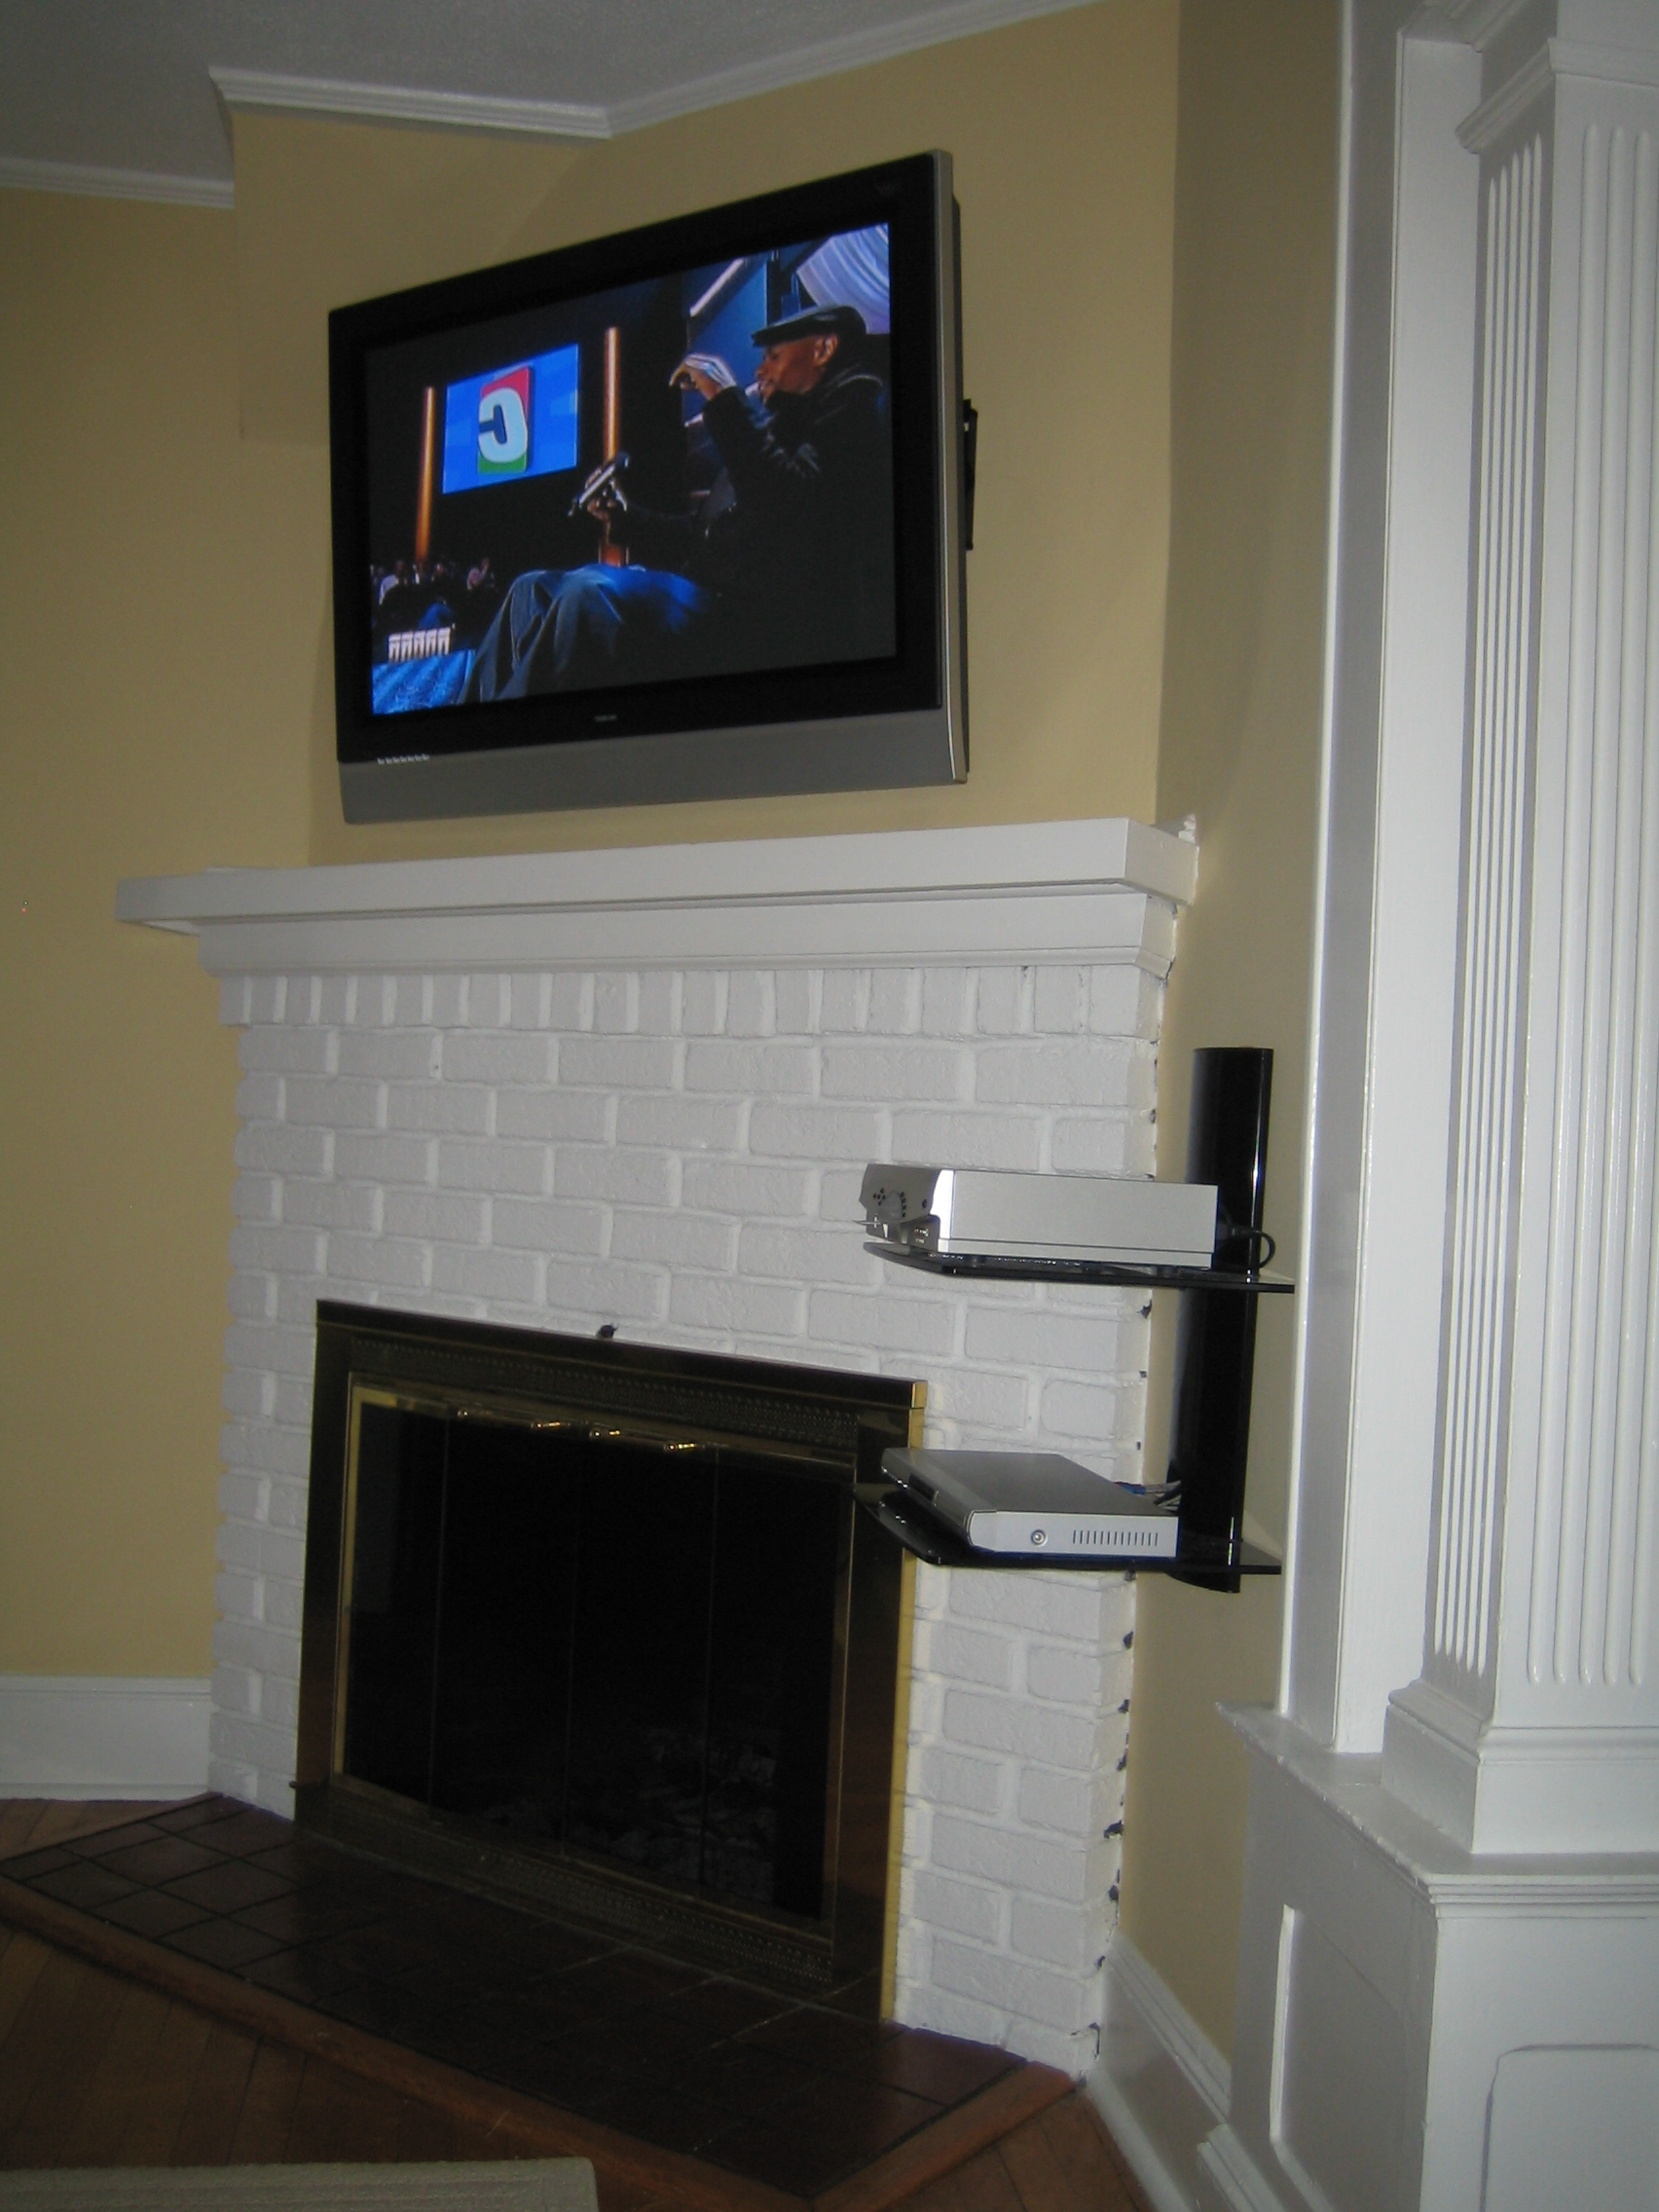 Most Recently Released Over Tv Shelves Inside Coventry, Ct – Tv Instlal Over Fireplace With All Wires Concealed (View 6 of 20)